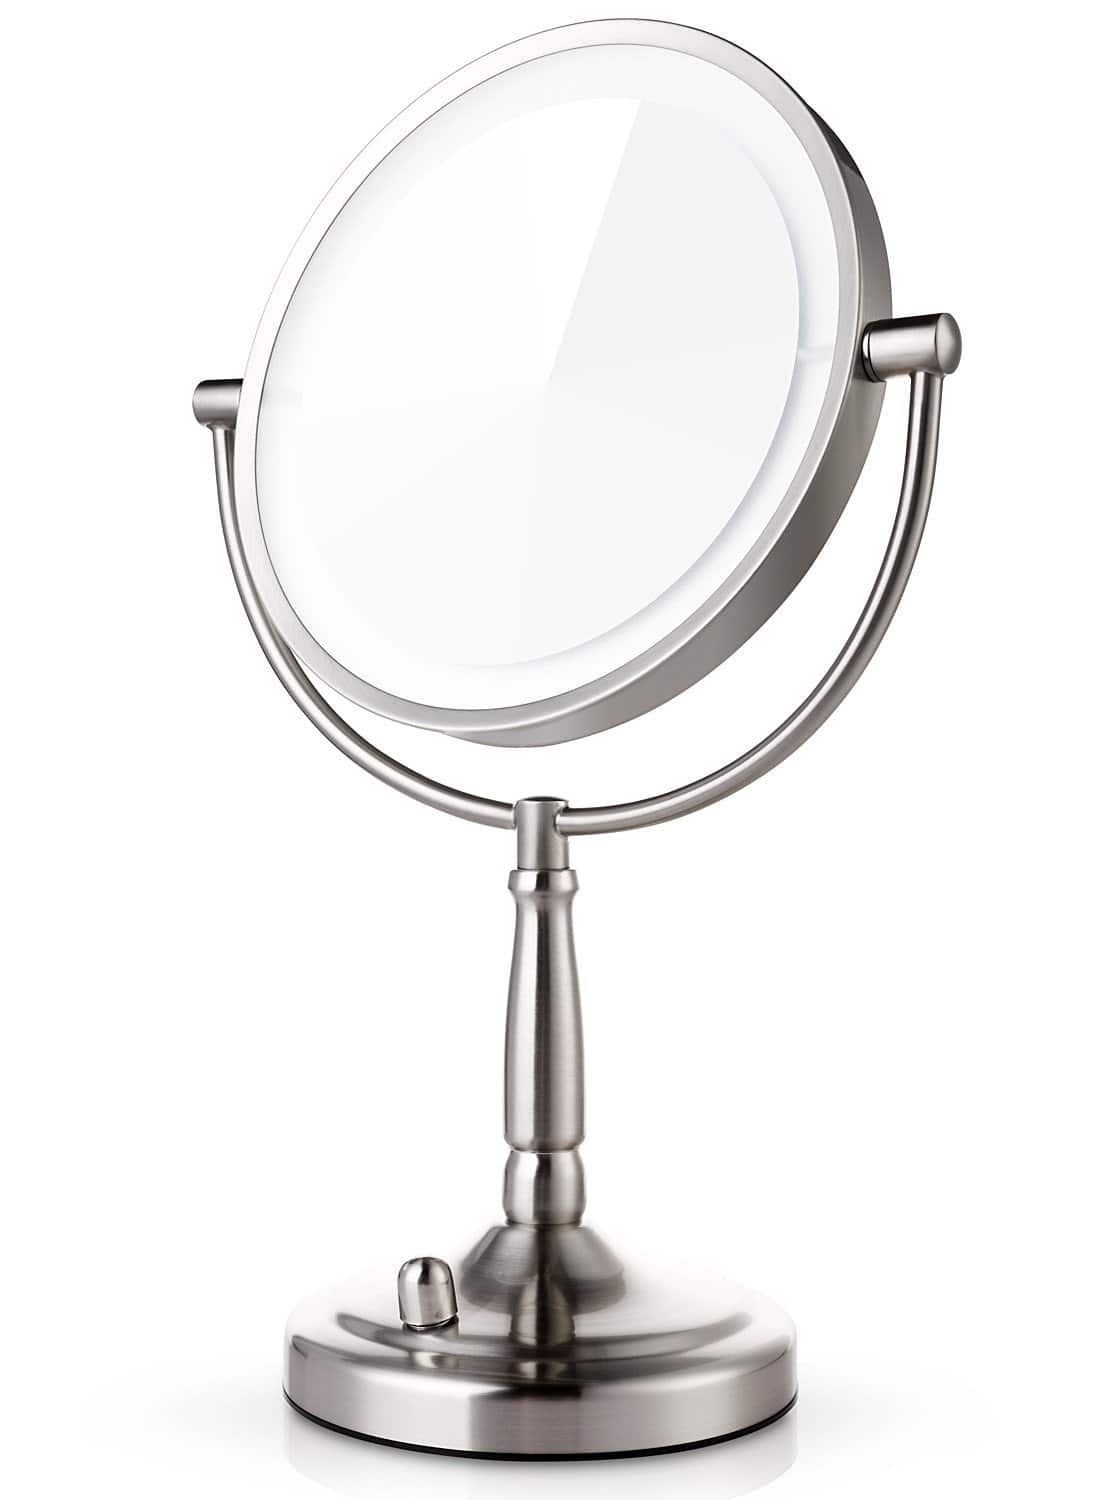 7X Magnifying Lighted Makeup Mirror, 8 Inch Two Sided LED Vanity Mirror, Battery and Adapter only $34.39 from Amazon